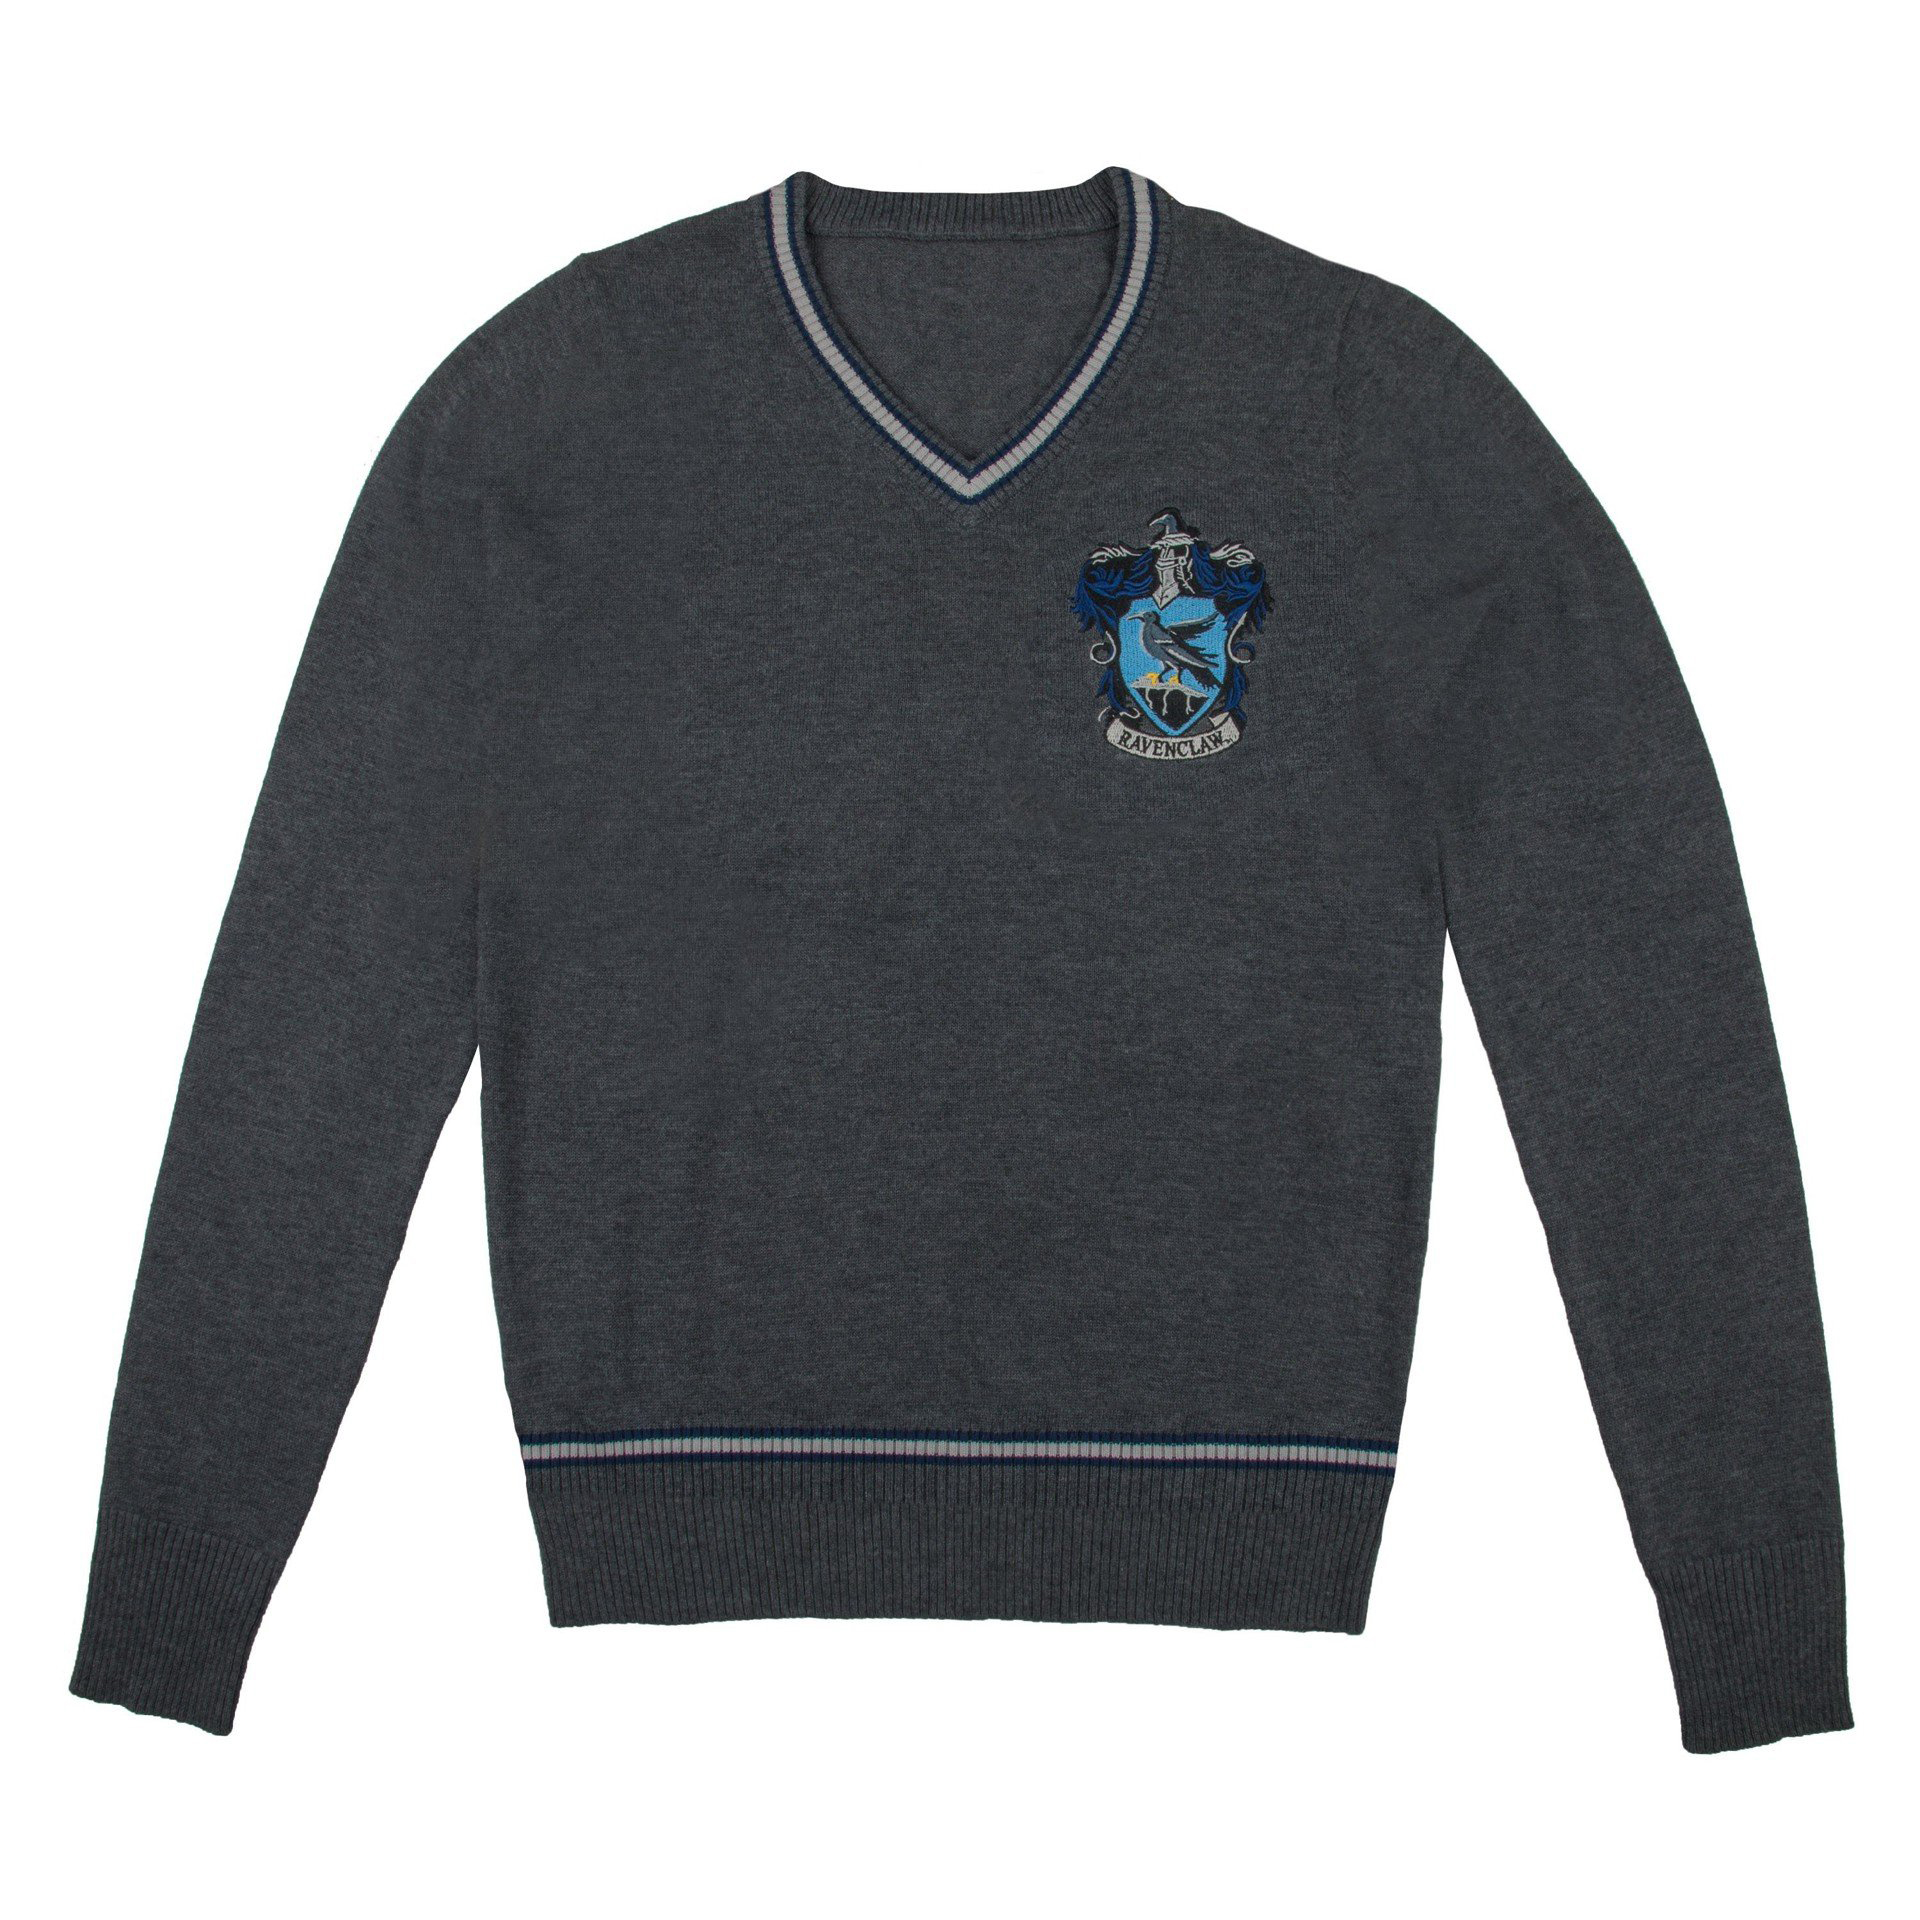 Harry Potter - Ravenclaw - Grey Knitted Sweater - Small